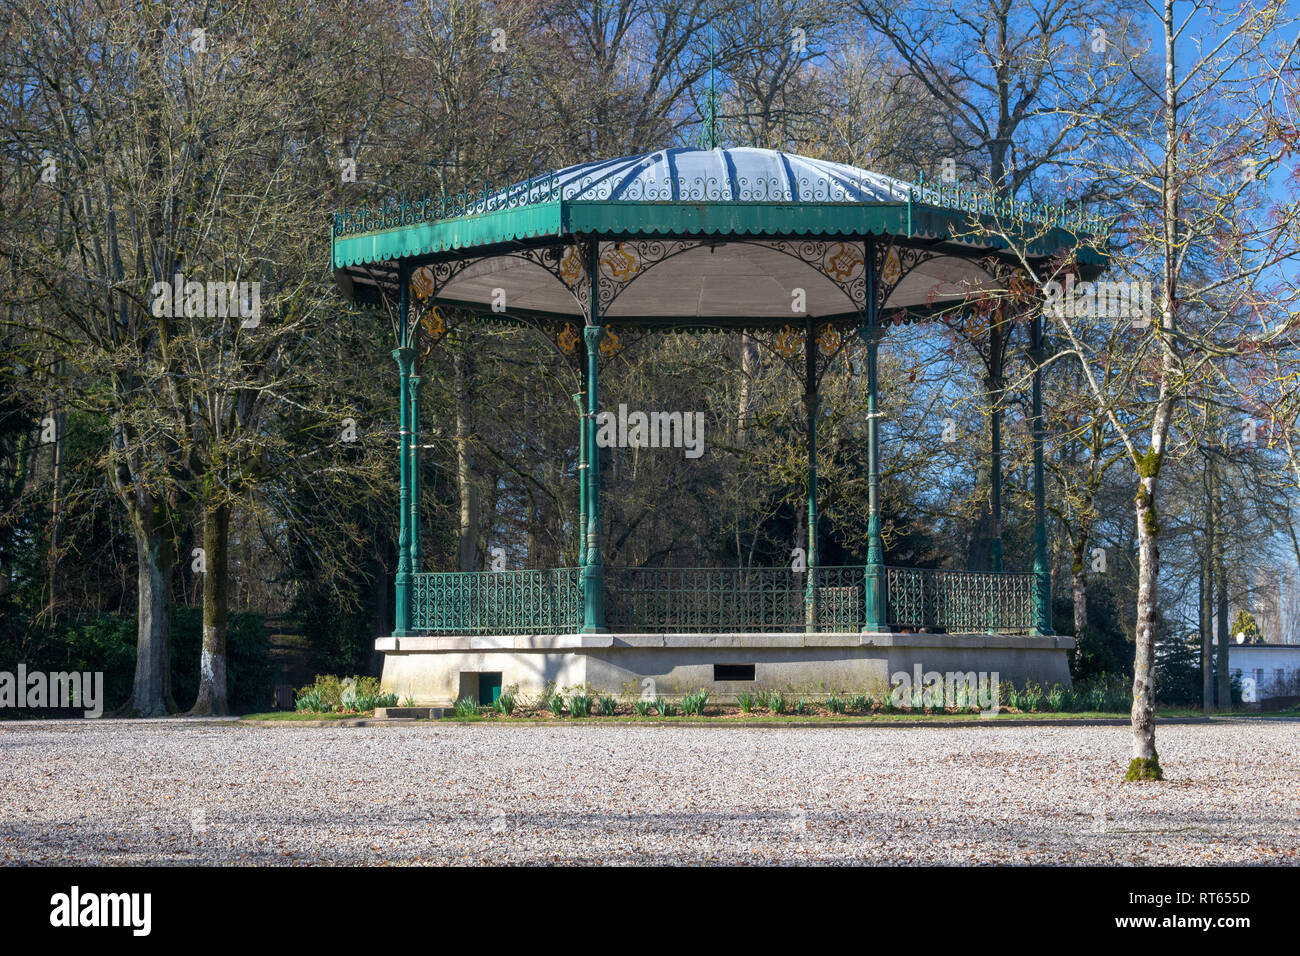 Bandstand in the Public Gardens at Saint Omer, France - Stock Image